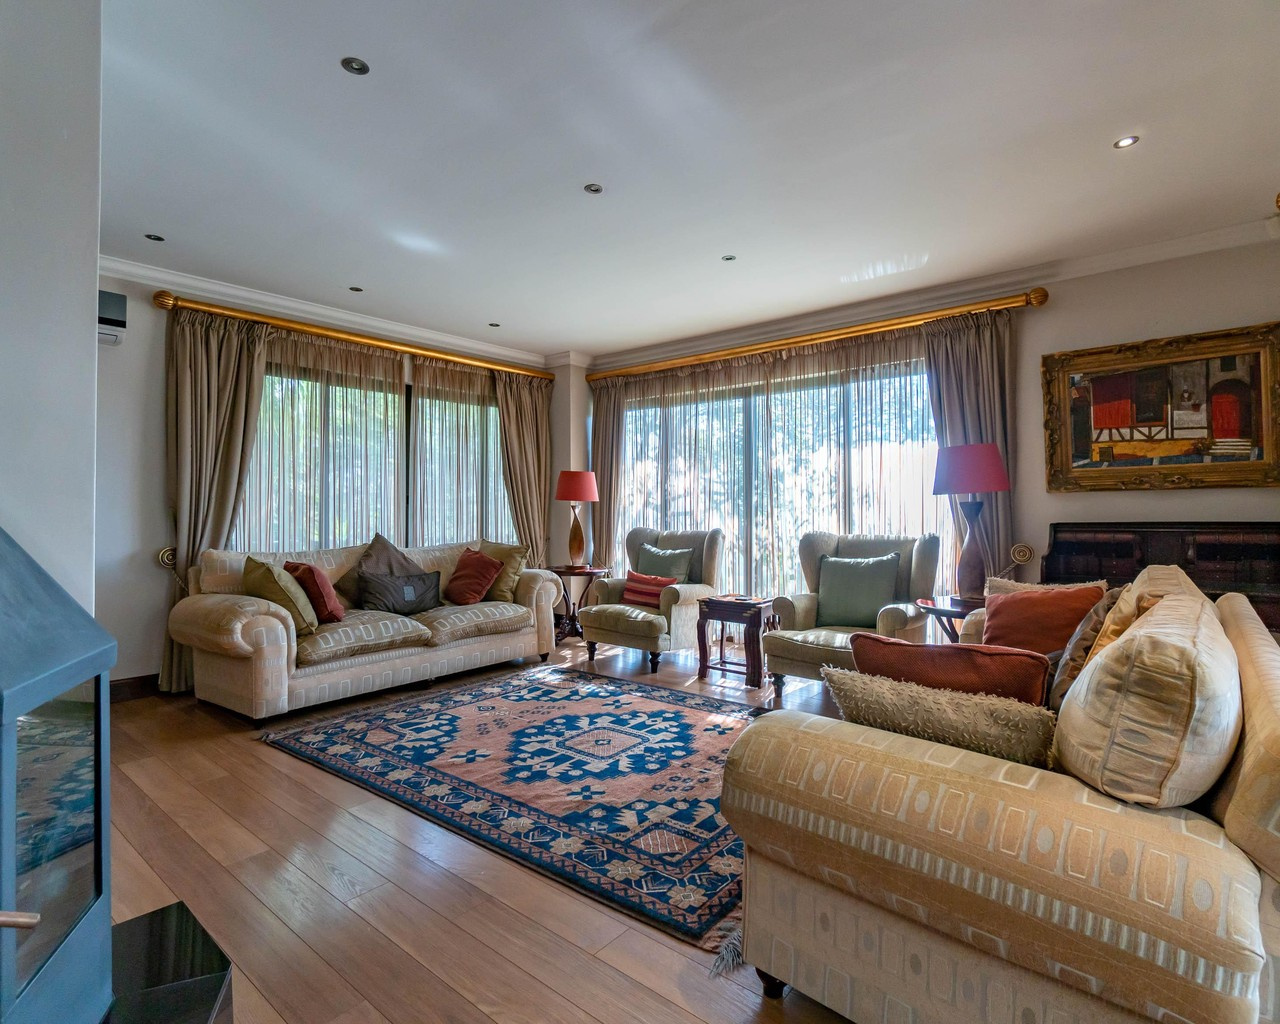 4 Bedroom House For Sale In Nelspruit Kellaprince Property